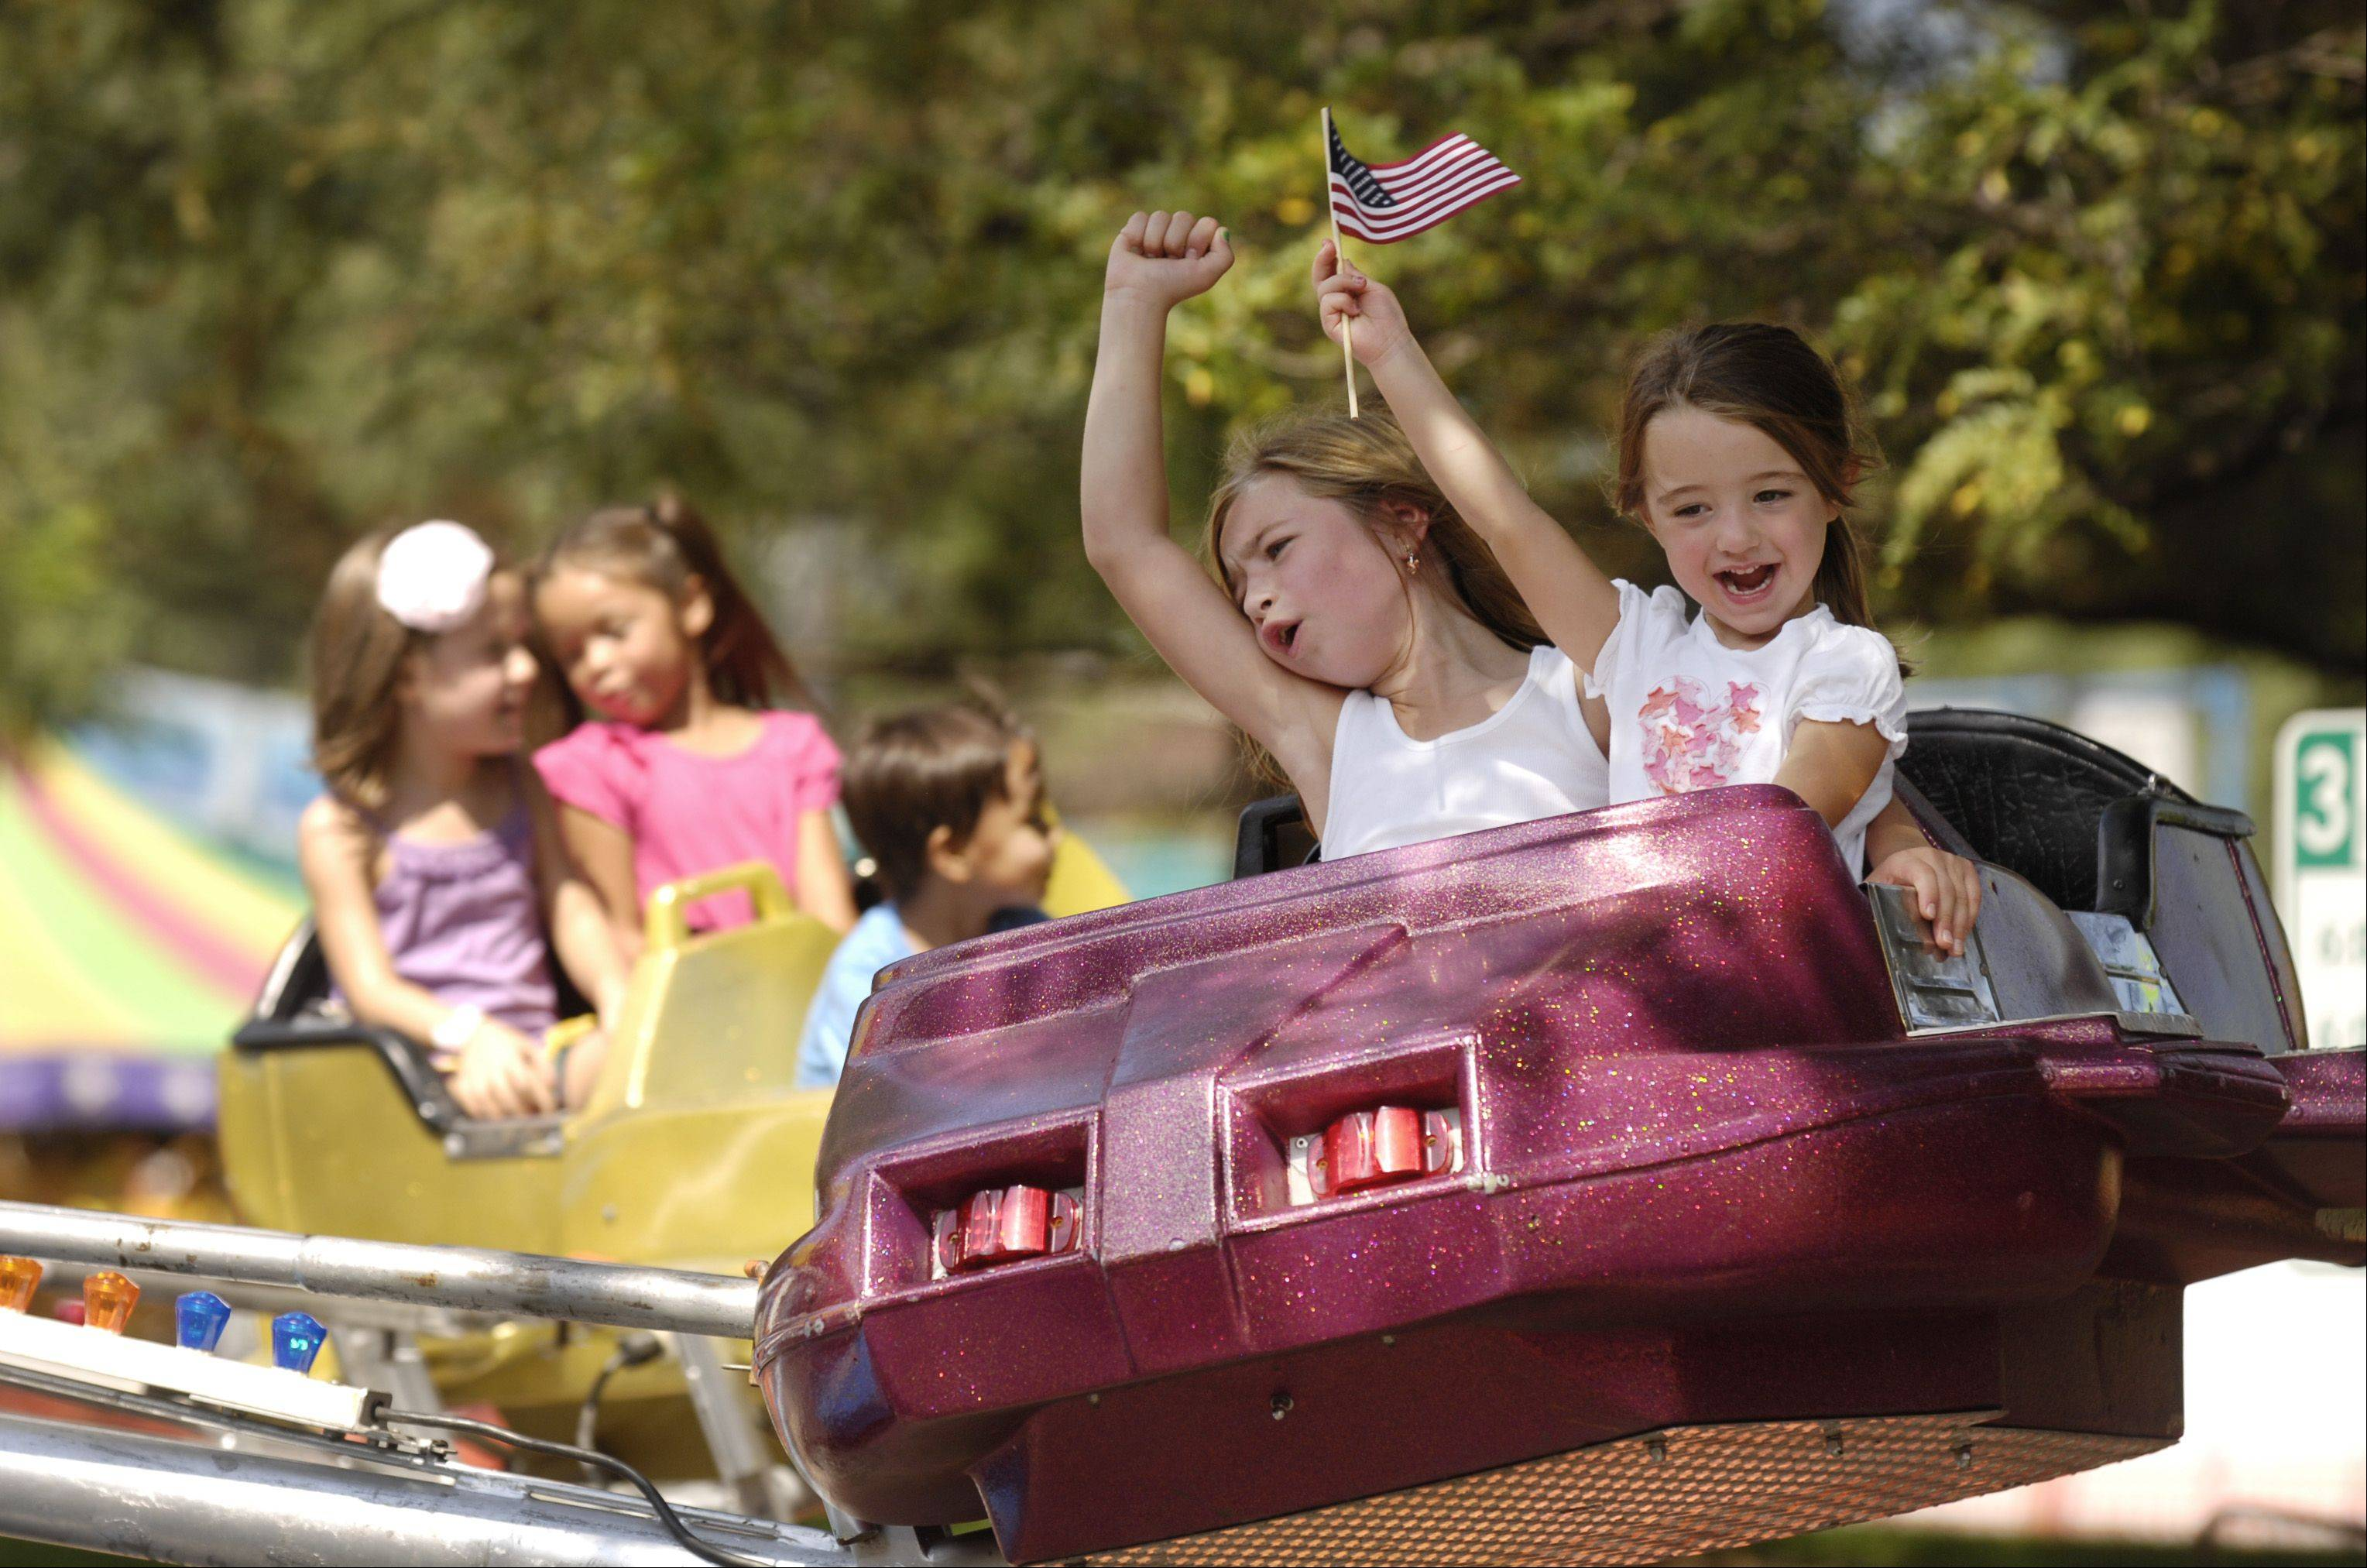 Peyton and Lexi Gilchrist of Naperville enjoy a ride at the annual Naperville Last Fling festival Monday.